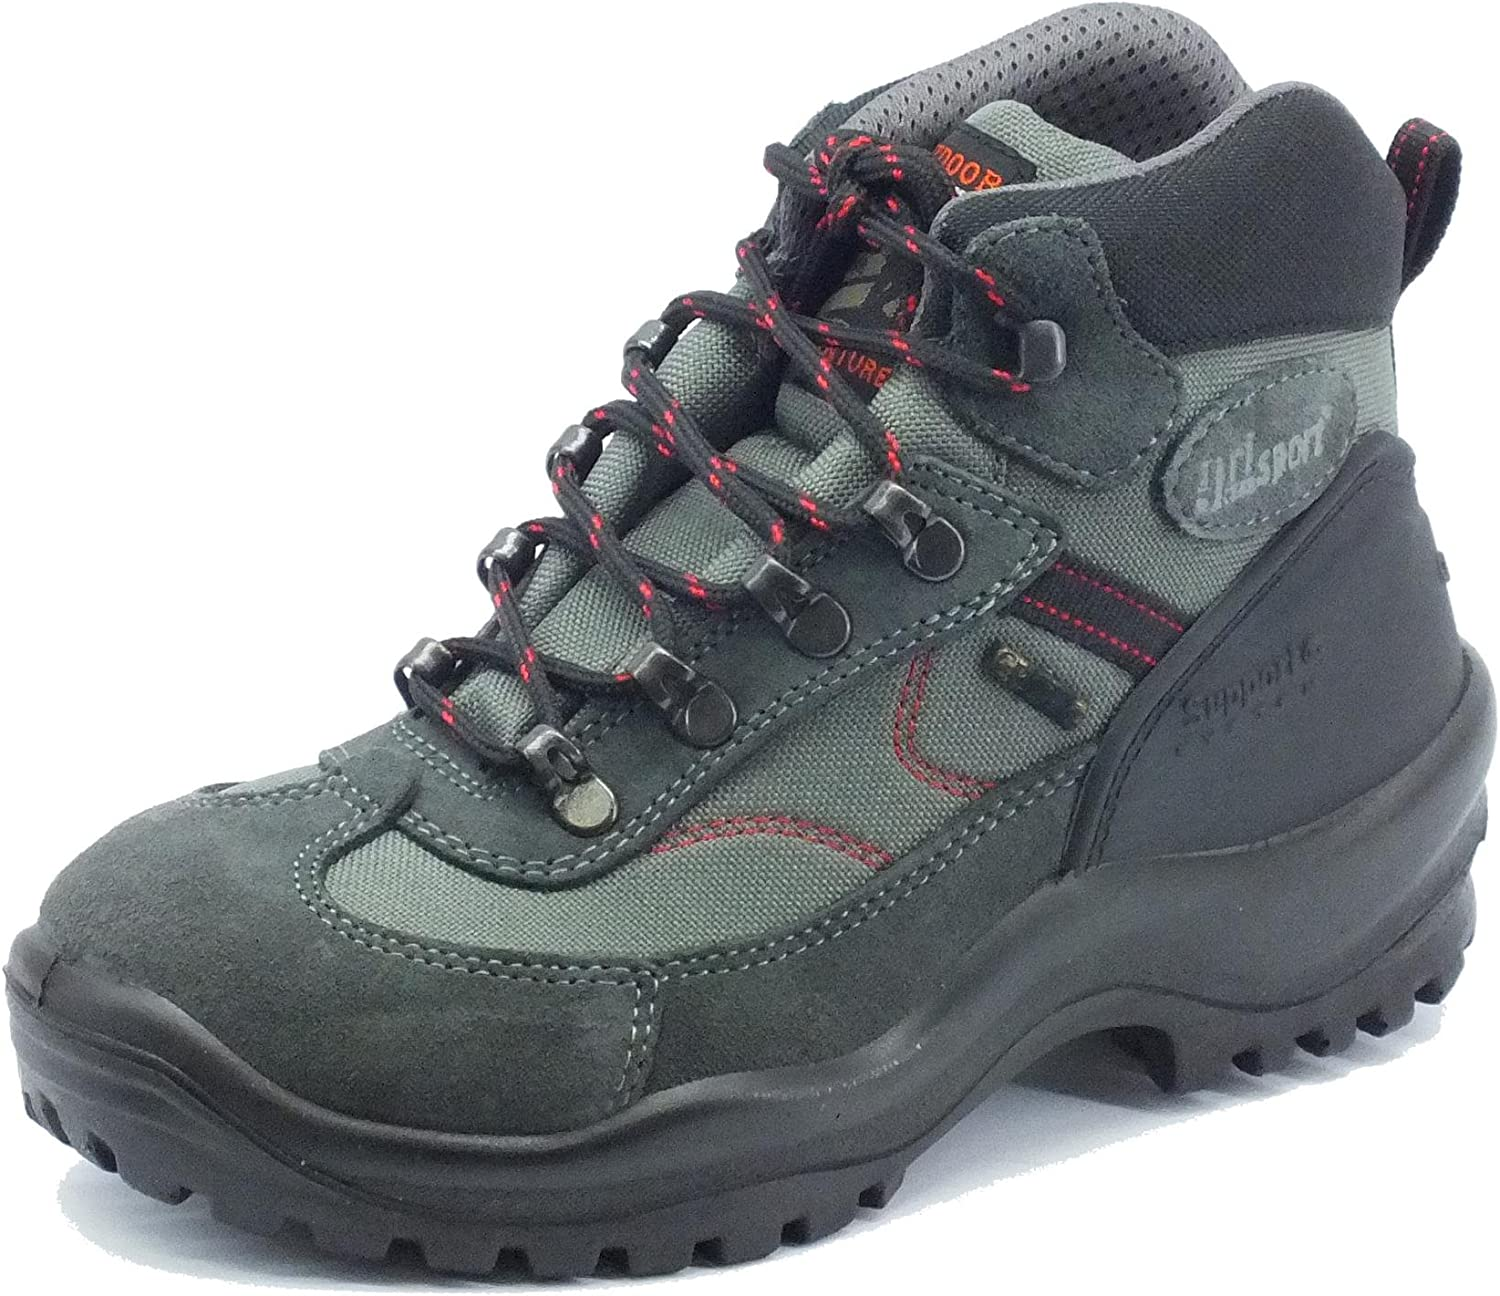 greyport Men's 10664s18g Antracite Scamosciato Hiking shoes